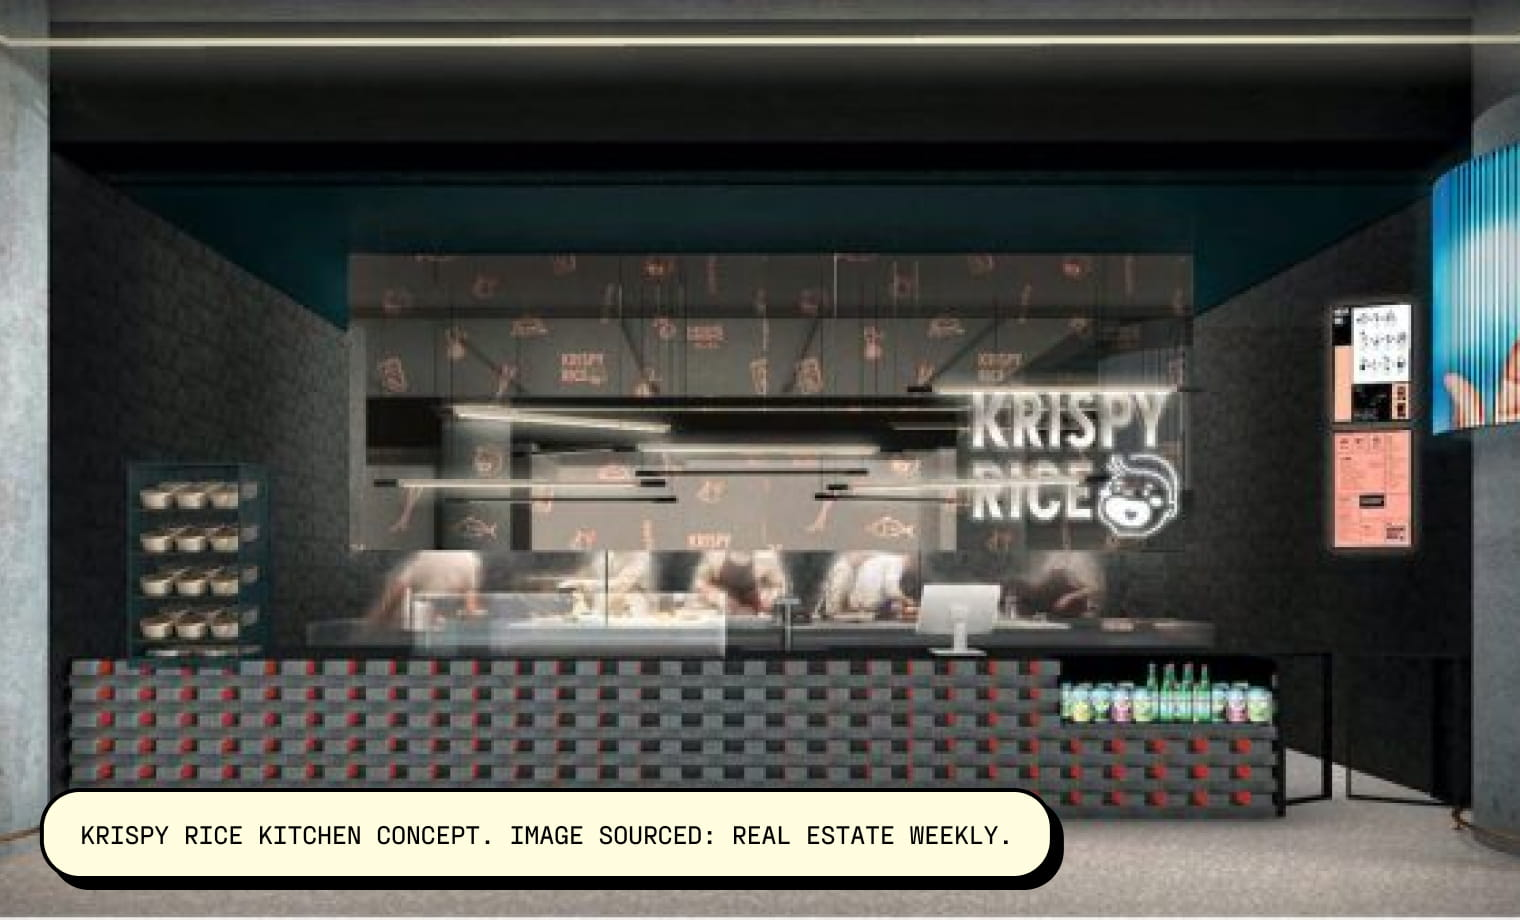 Krispy Rice Kitchen Concept. Image Sourced: Real Estate Weekly.